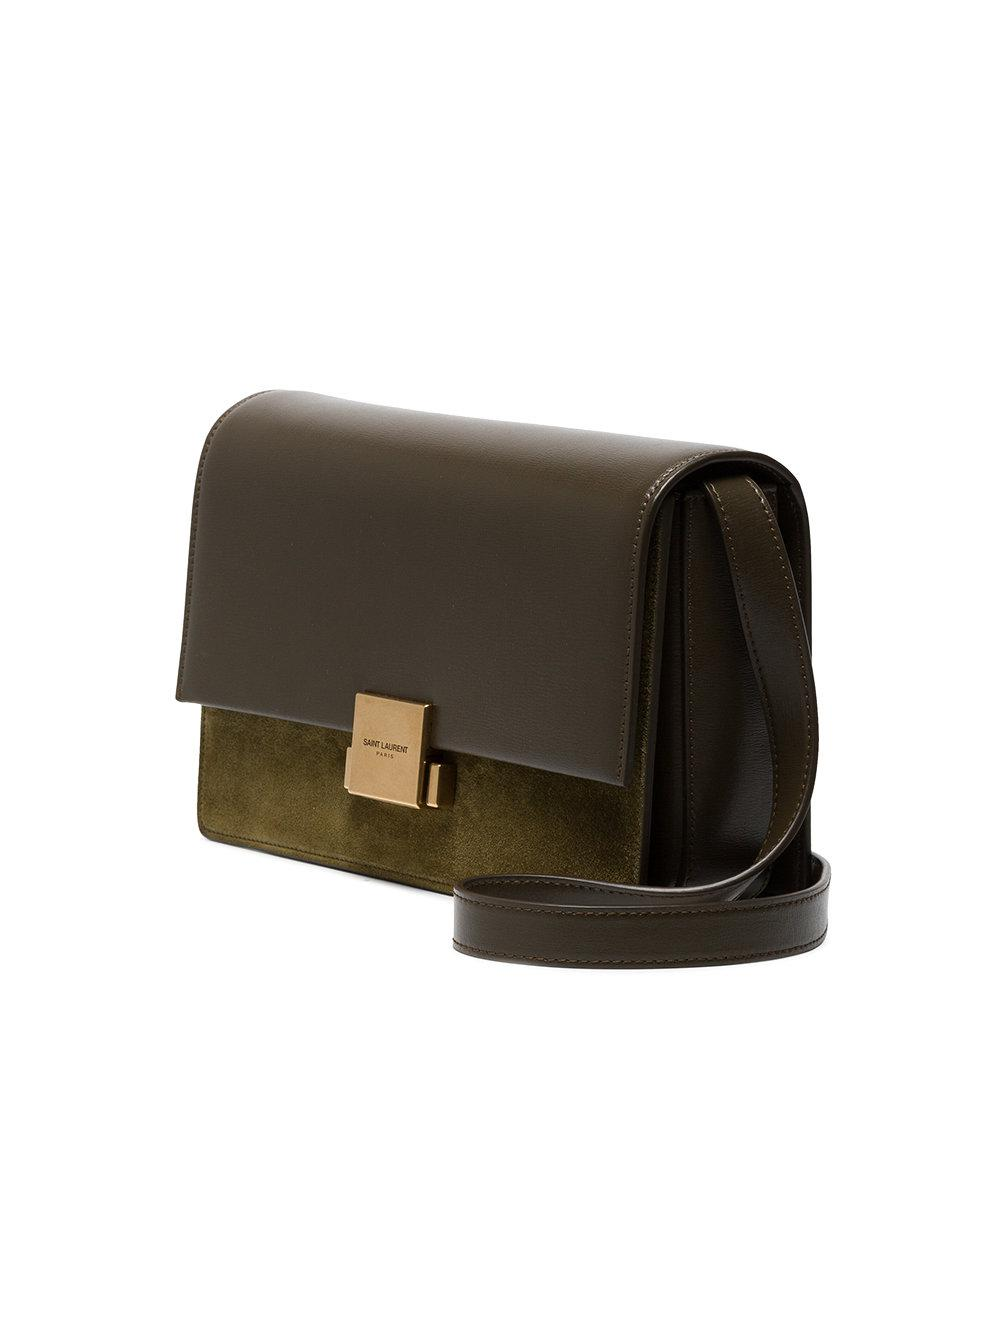 Lyst - Saint Laurent Green Bellechasse Medium Suede And Leather ... ce384ca36fa05